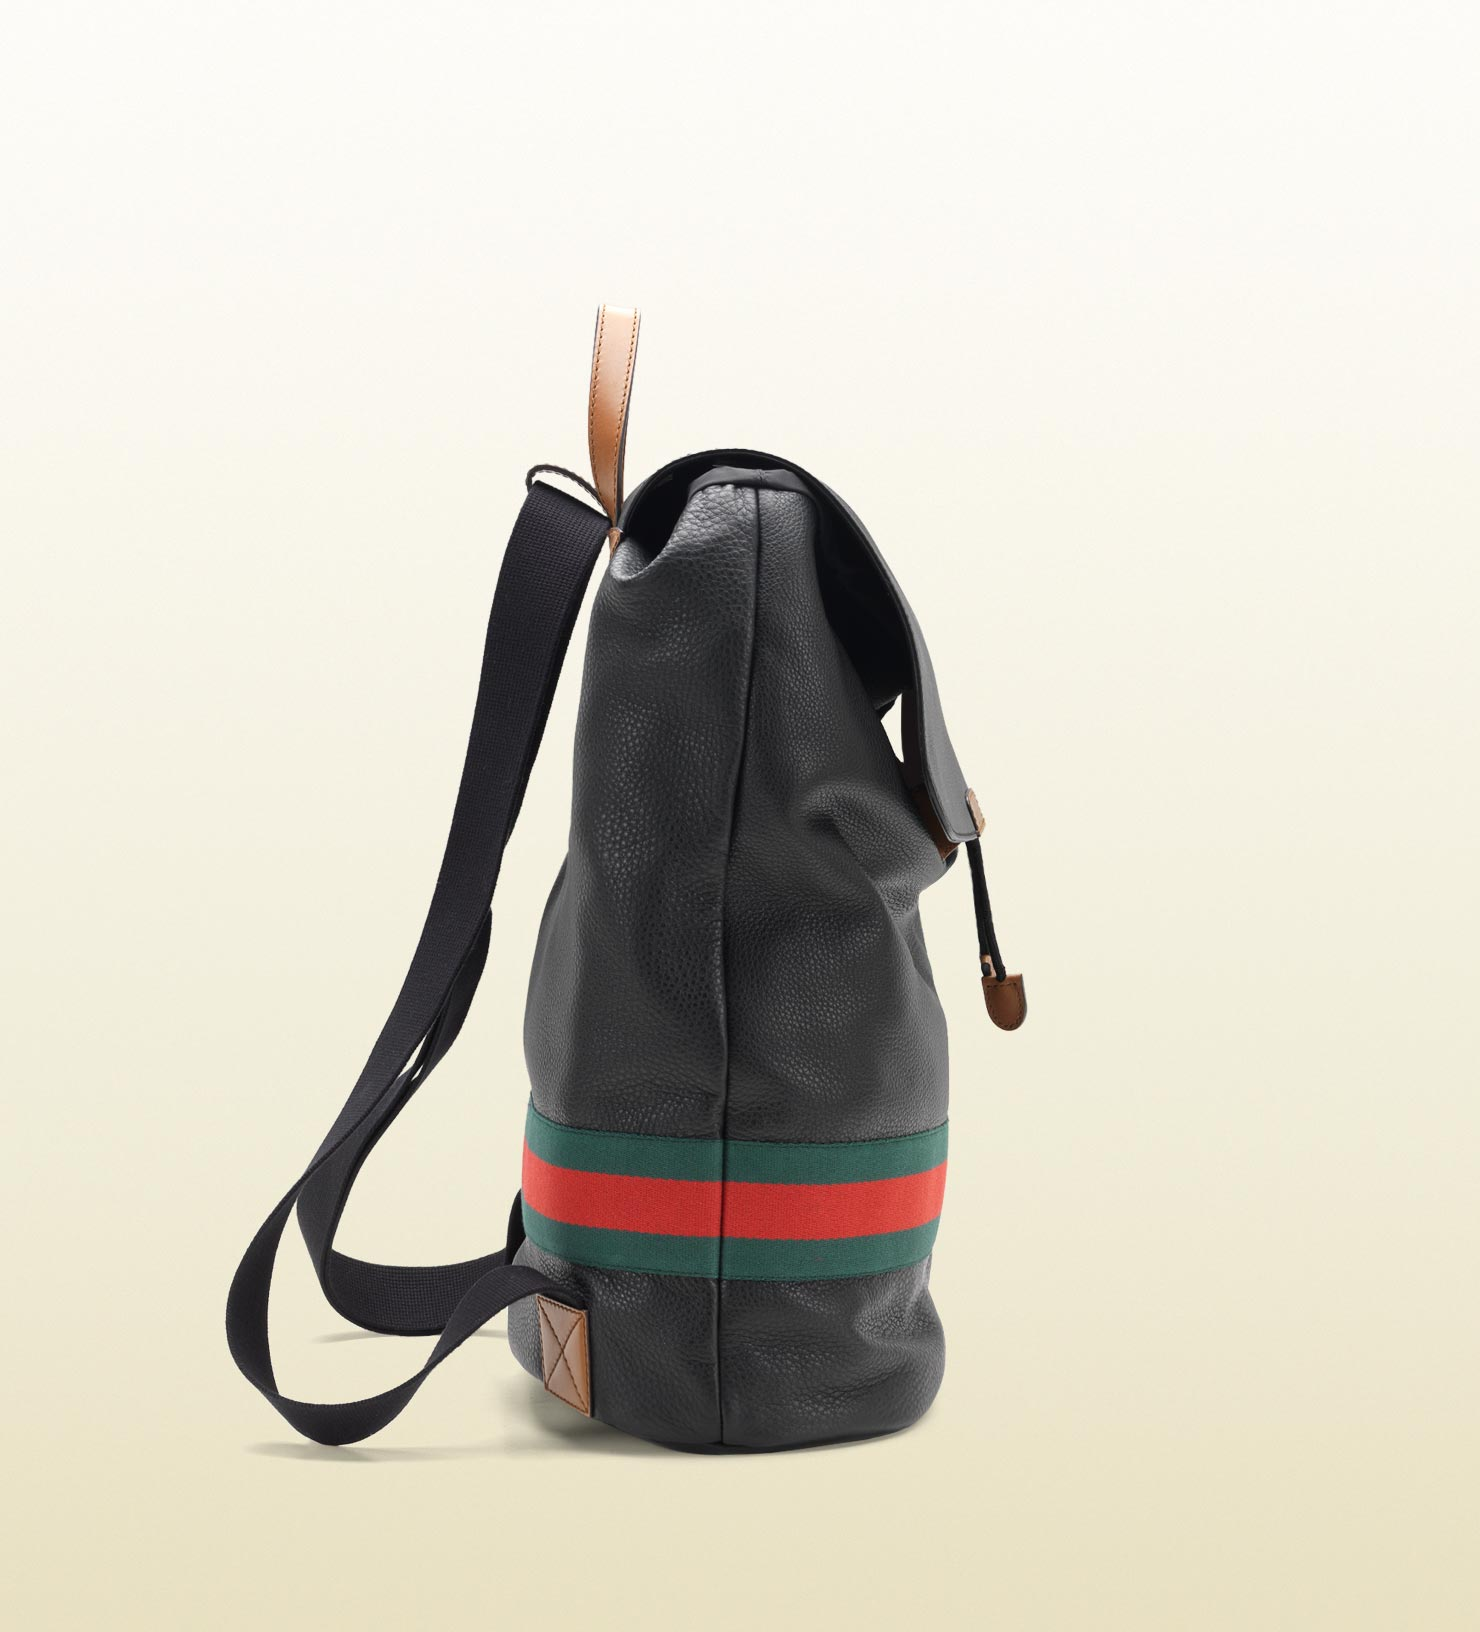 Gucci Signature Web Backpack in Black for Men - Lyst